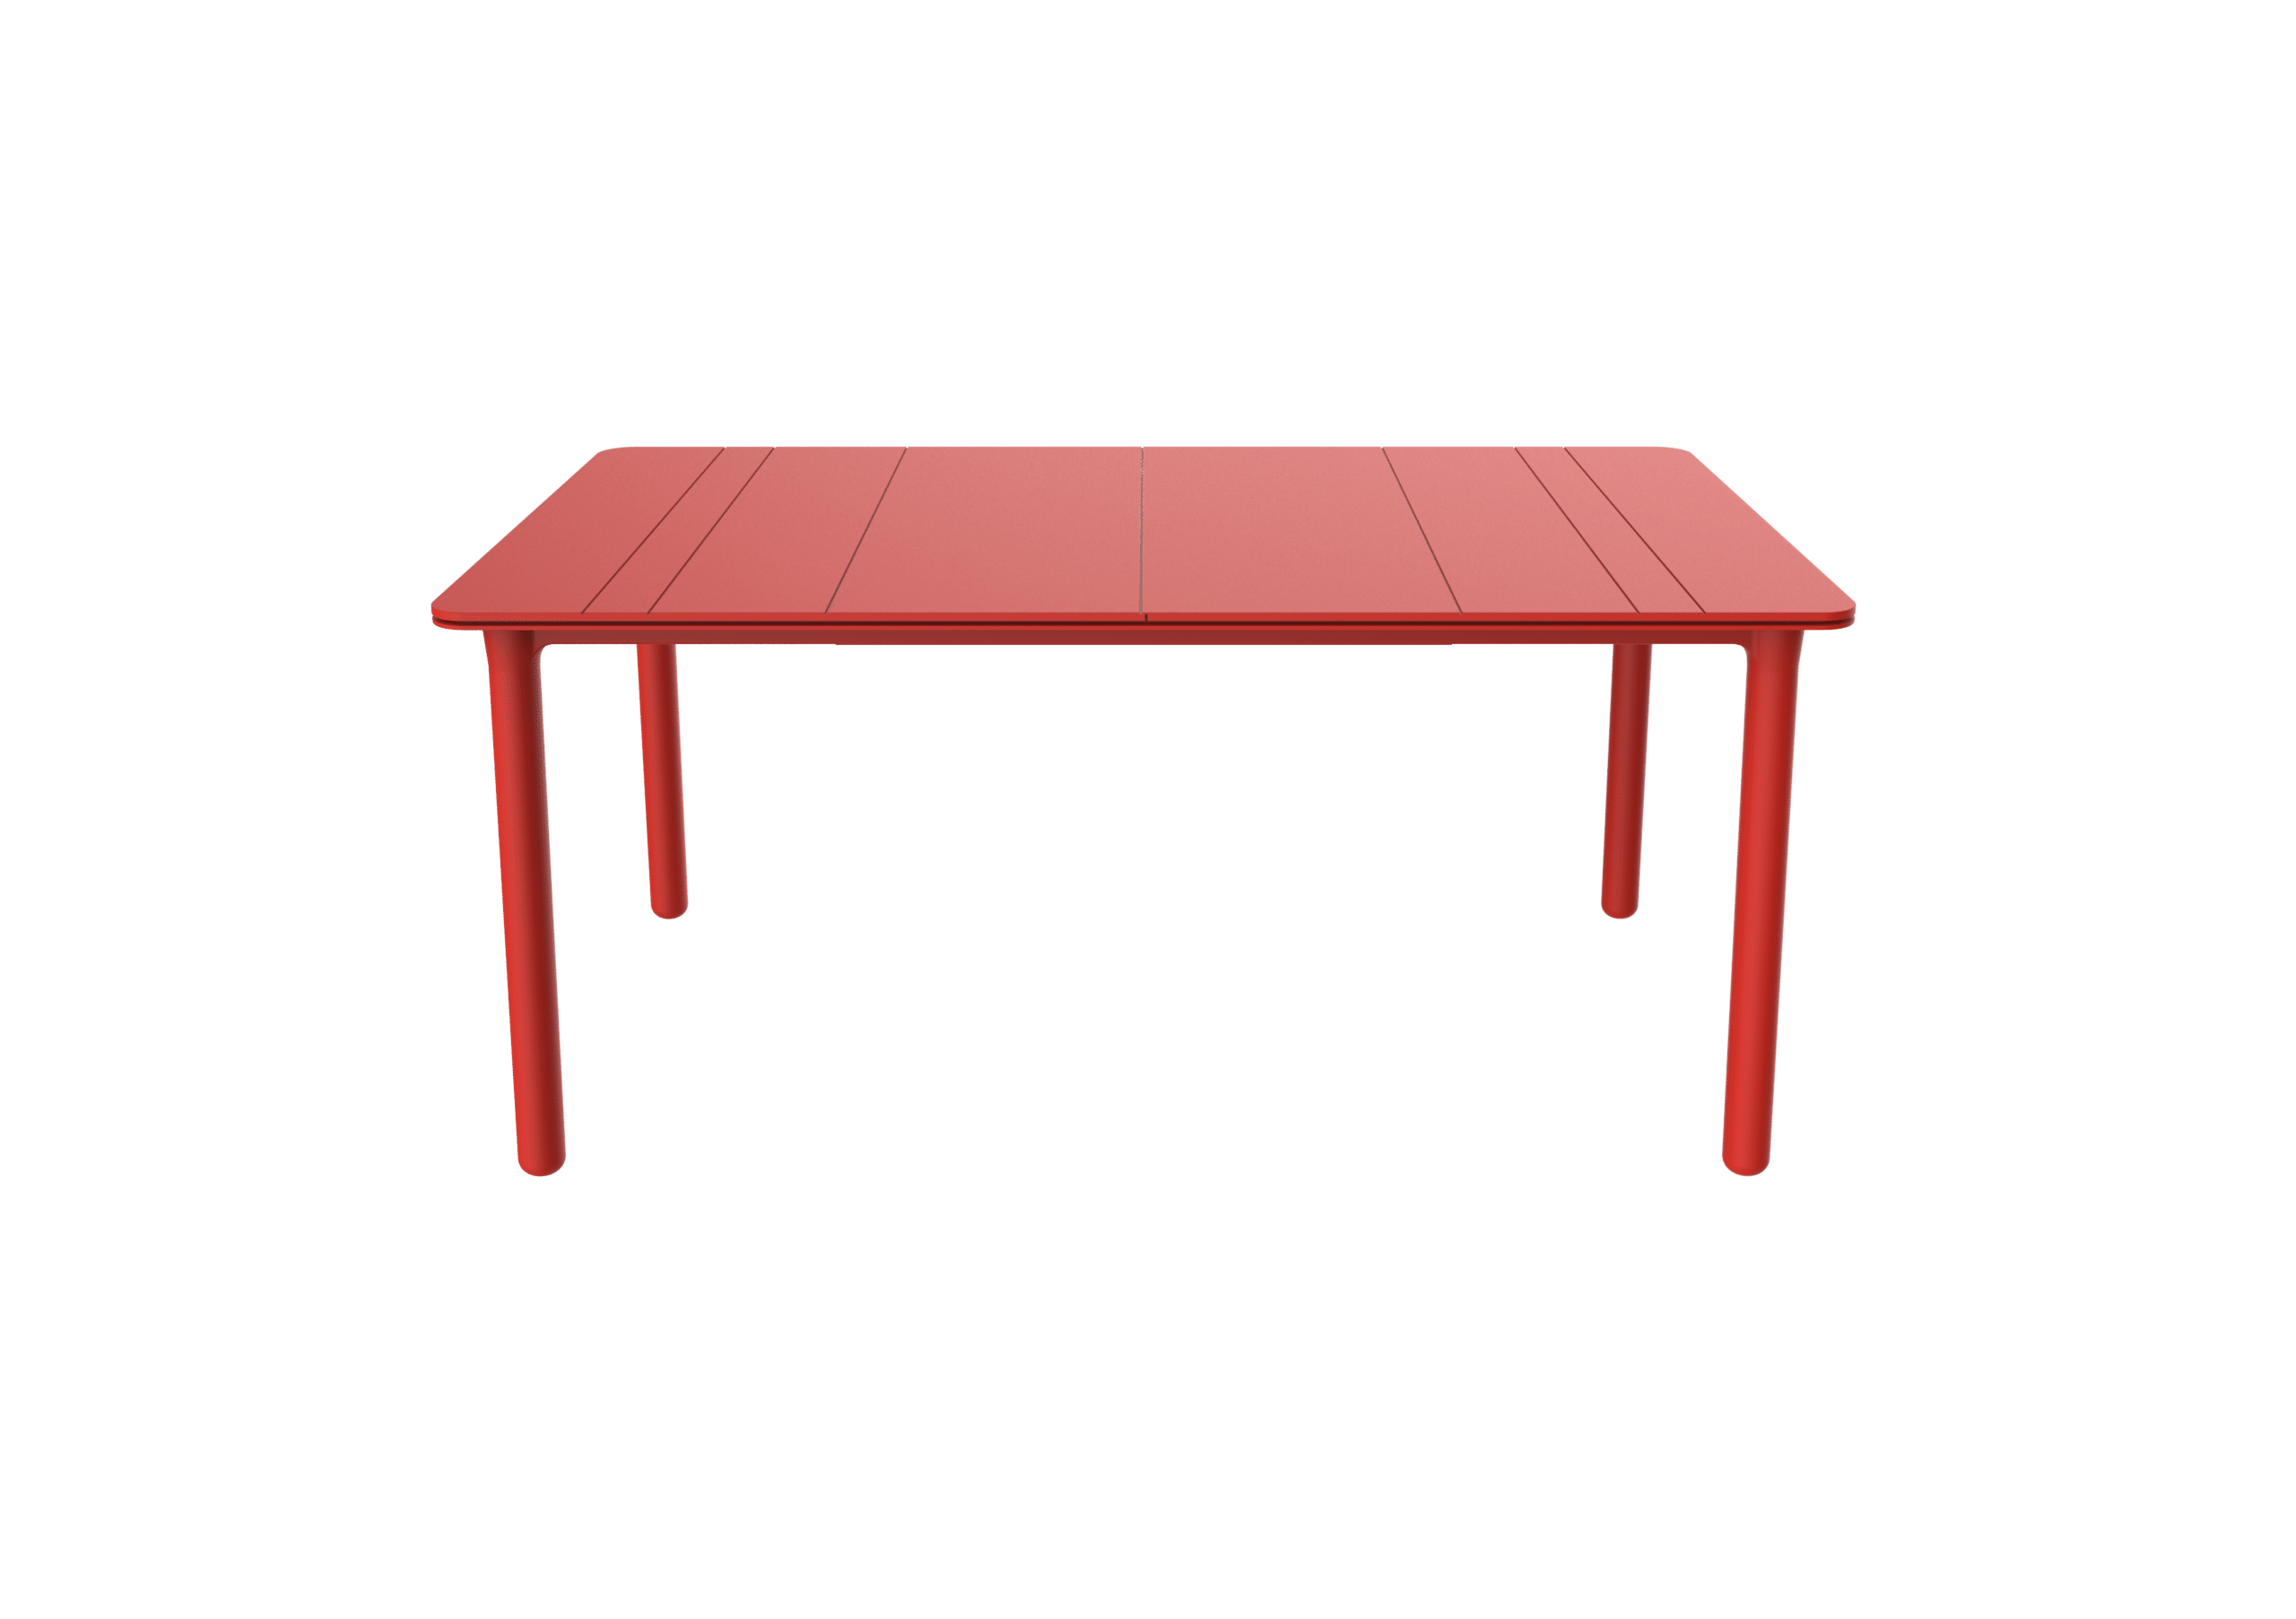 <p>Outdoor Furniture Contemporary Collection – Durango Commercial Dining Table – Red.</p> <p> </p> <p>Table for indoor and outdoor use available in a variety of colours.</p> <p> </p> <p>Adaptable to any environment being designed by architects. Capturing essential features such as elegance lightness, functionality, ergonomics and care for the environment.</p>